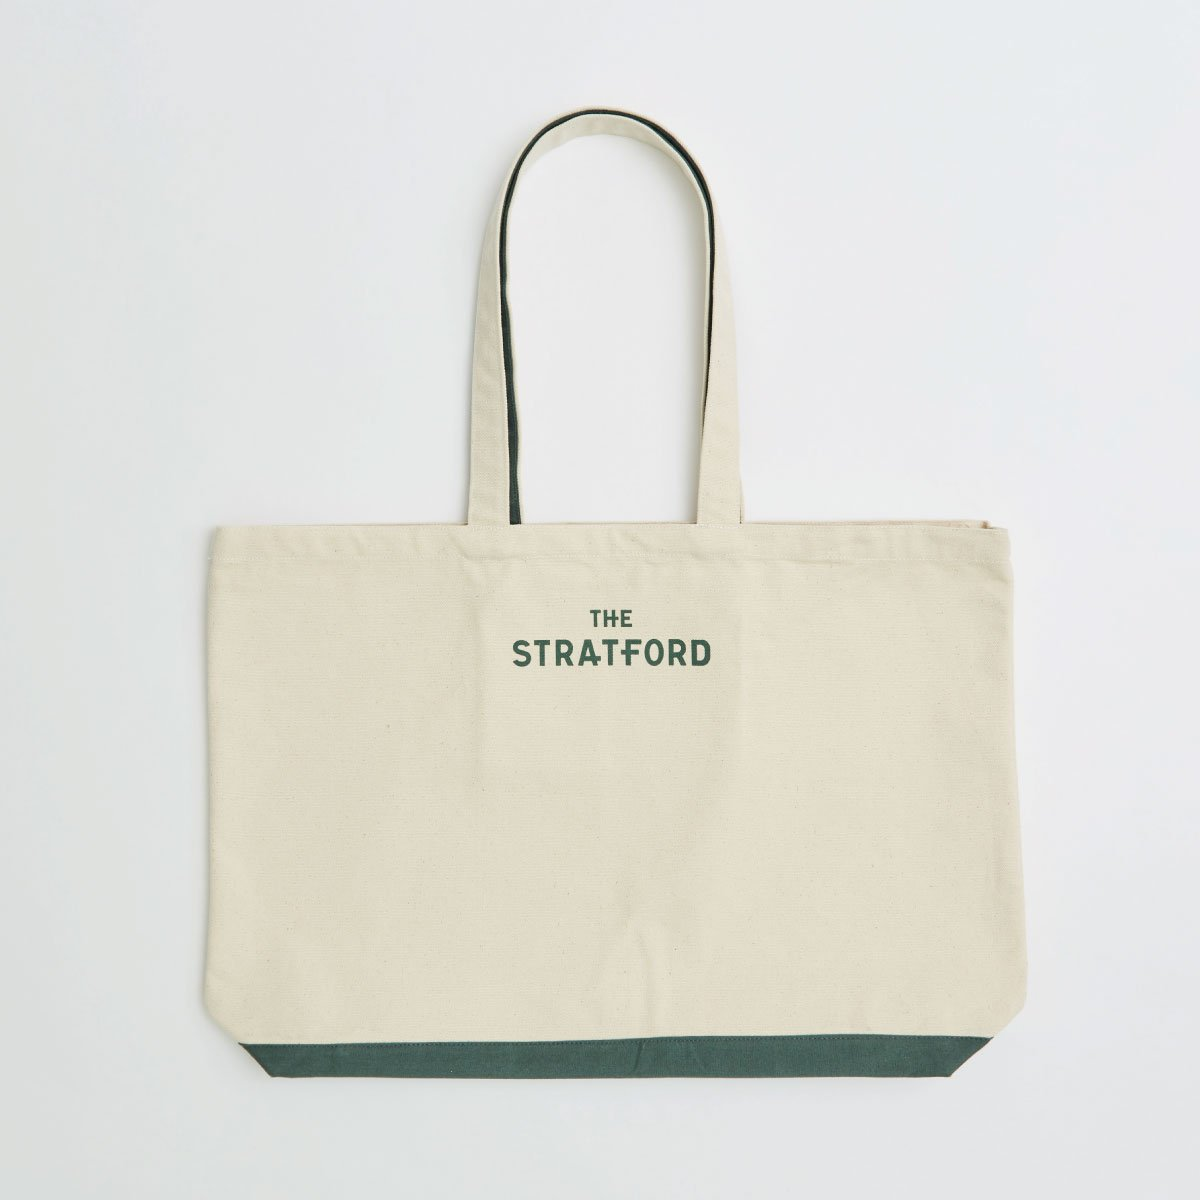 cotton tote bags wholesale from Supreme Creations